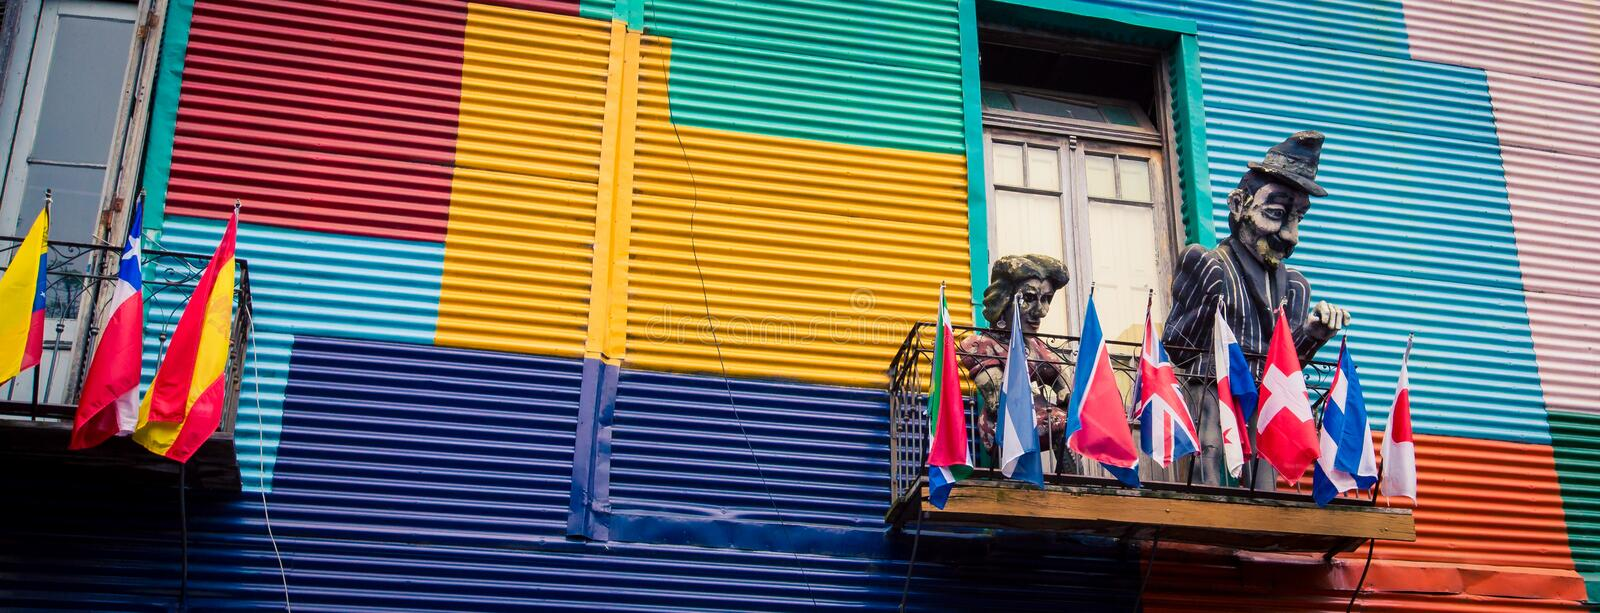 La boca buenos aires. La Boca is a barrio of the Argentine capital, Buenos Aires royalty free stock photography